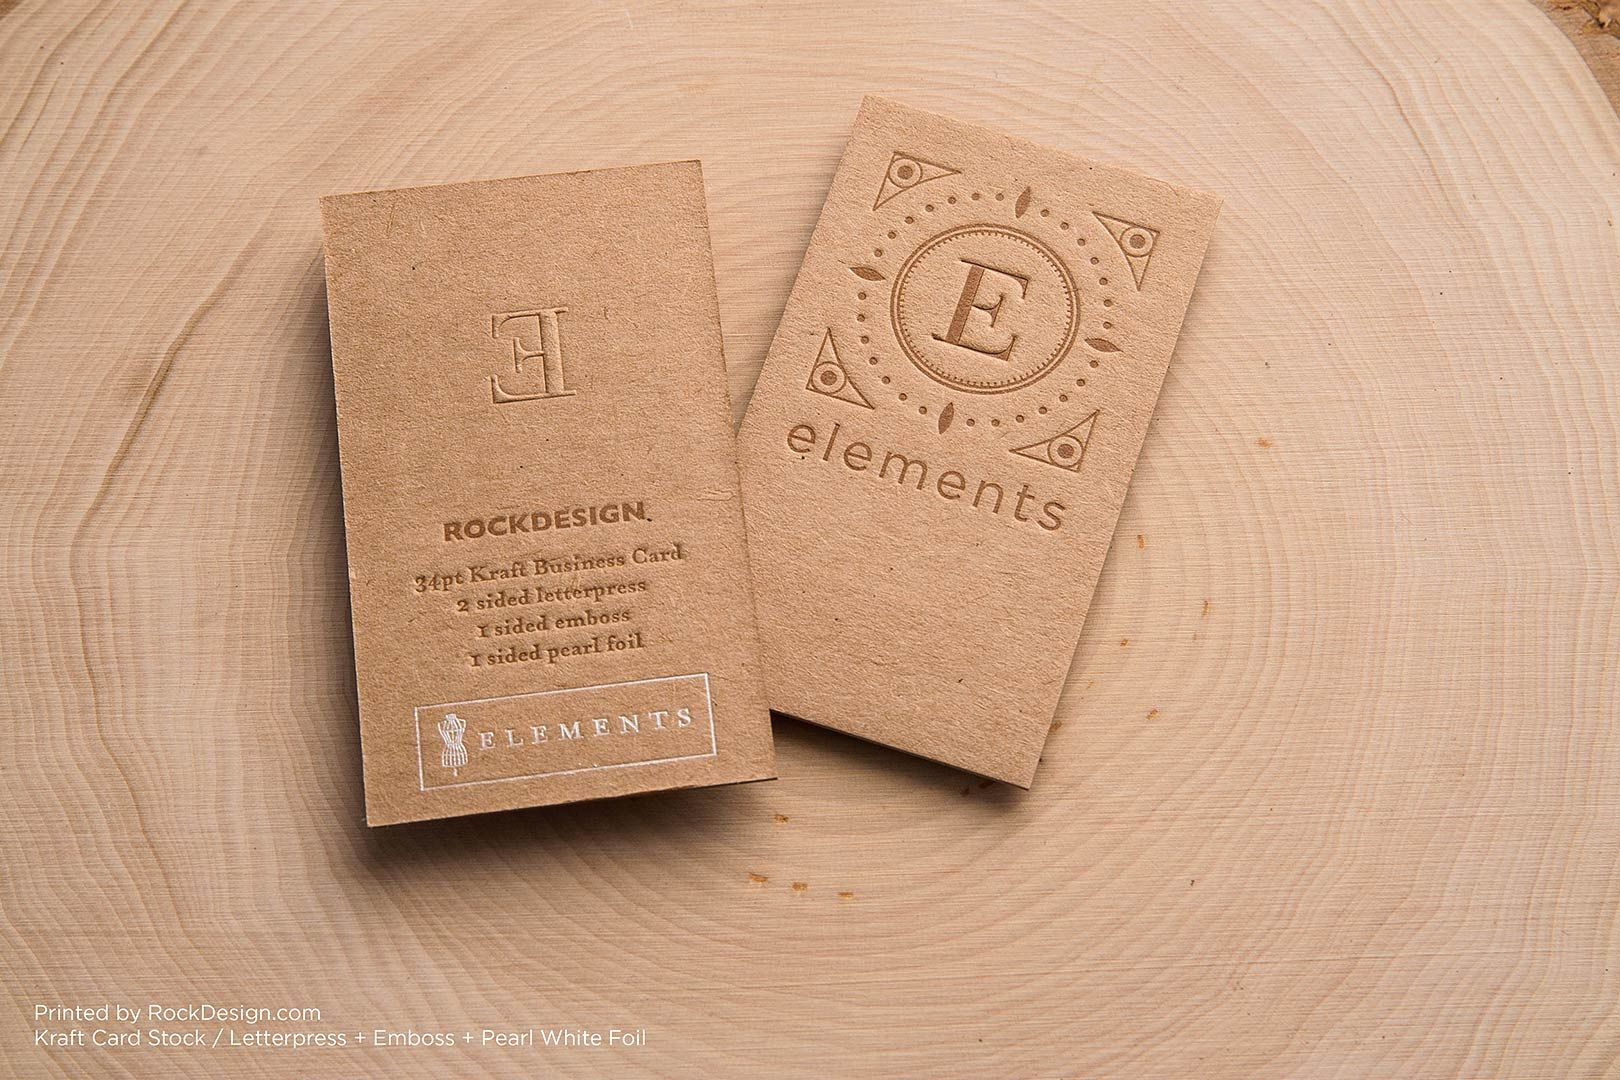 Brown kraft business cards rockdesign luxury business card brown kraft business cards rockdesign luxury business card printing biz cards pinterest luxury business cards card printing and business cards reheart Images